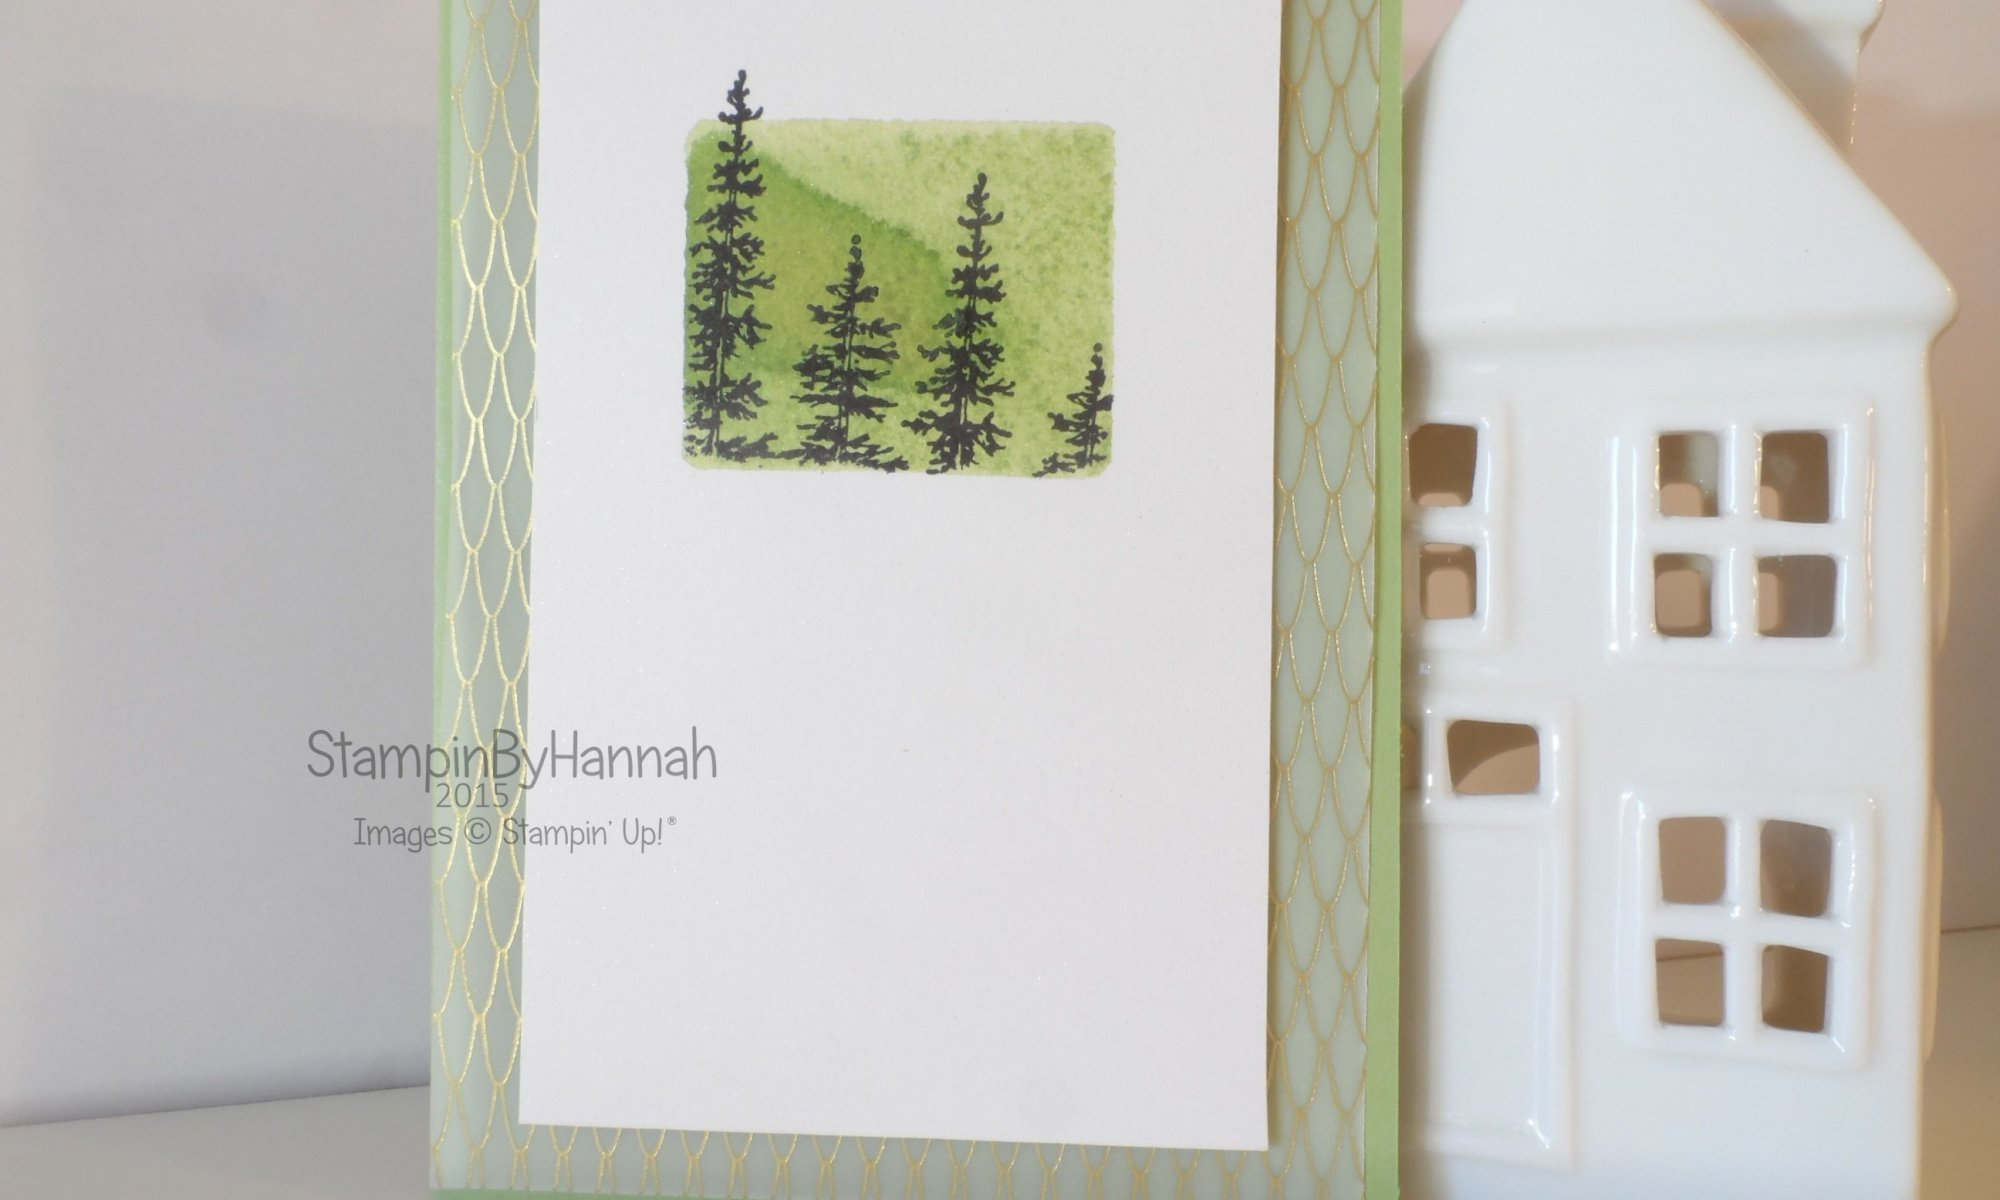 Stampin' Up! Wonderland Vellum Sympathy card